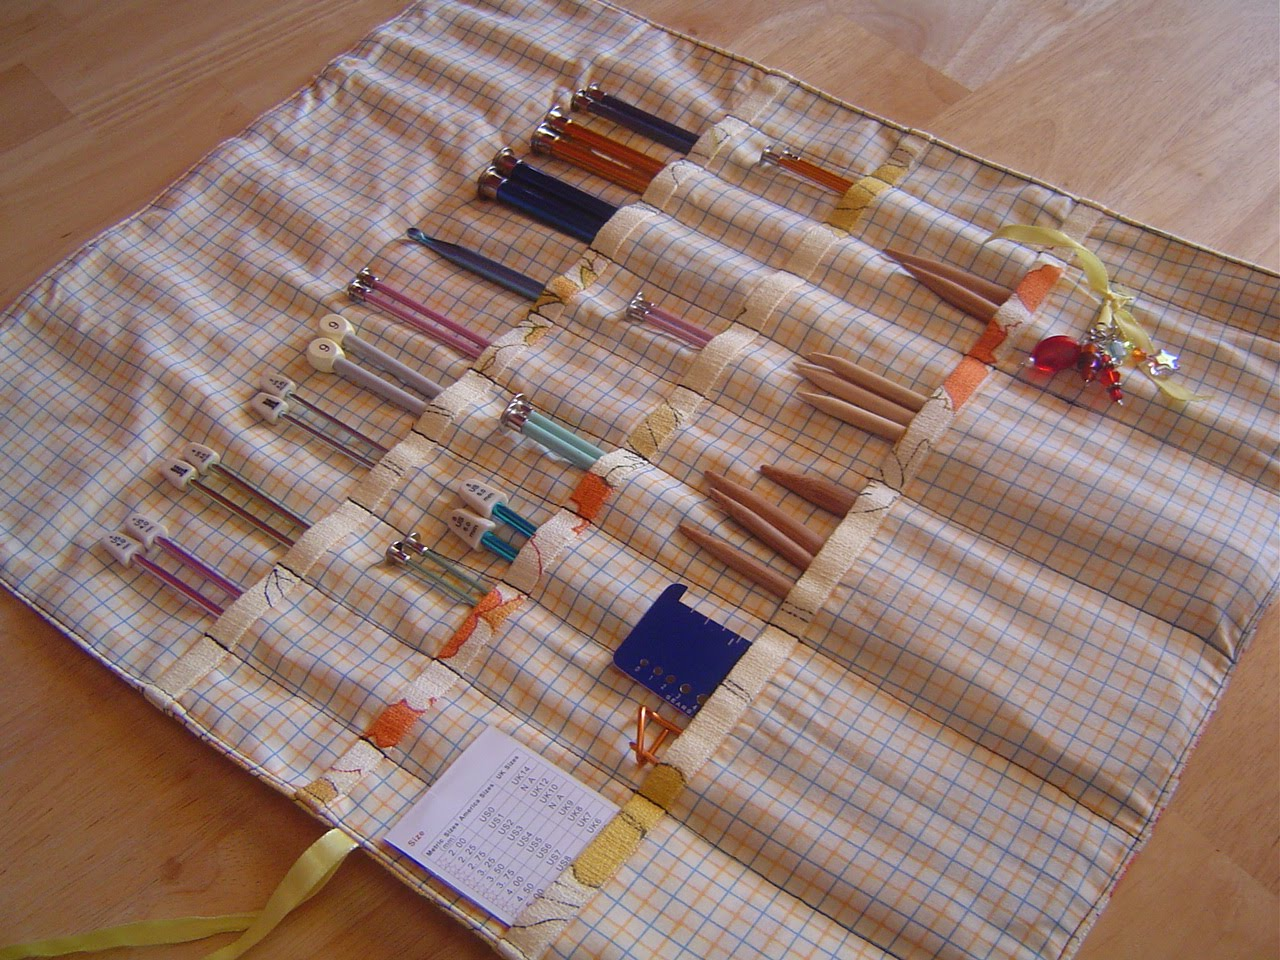 Organizing Knitting Supplies : By your hands organizing crochet knitting supplies